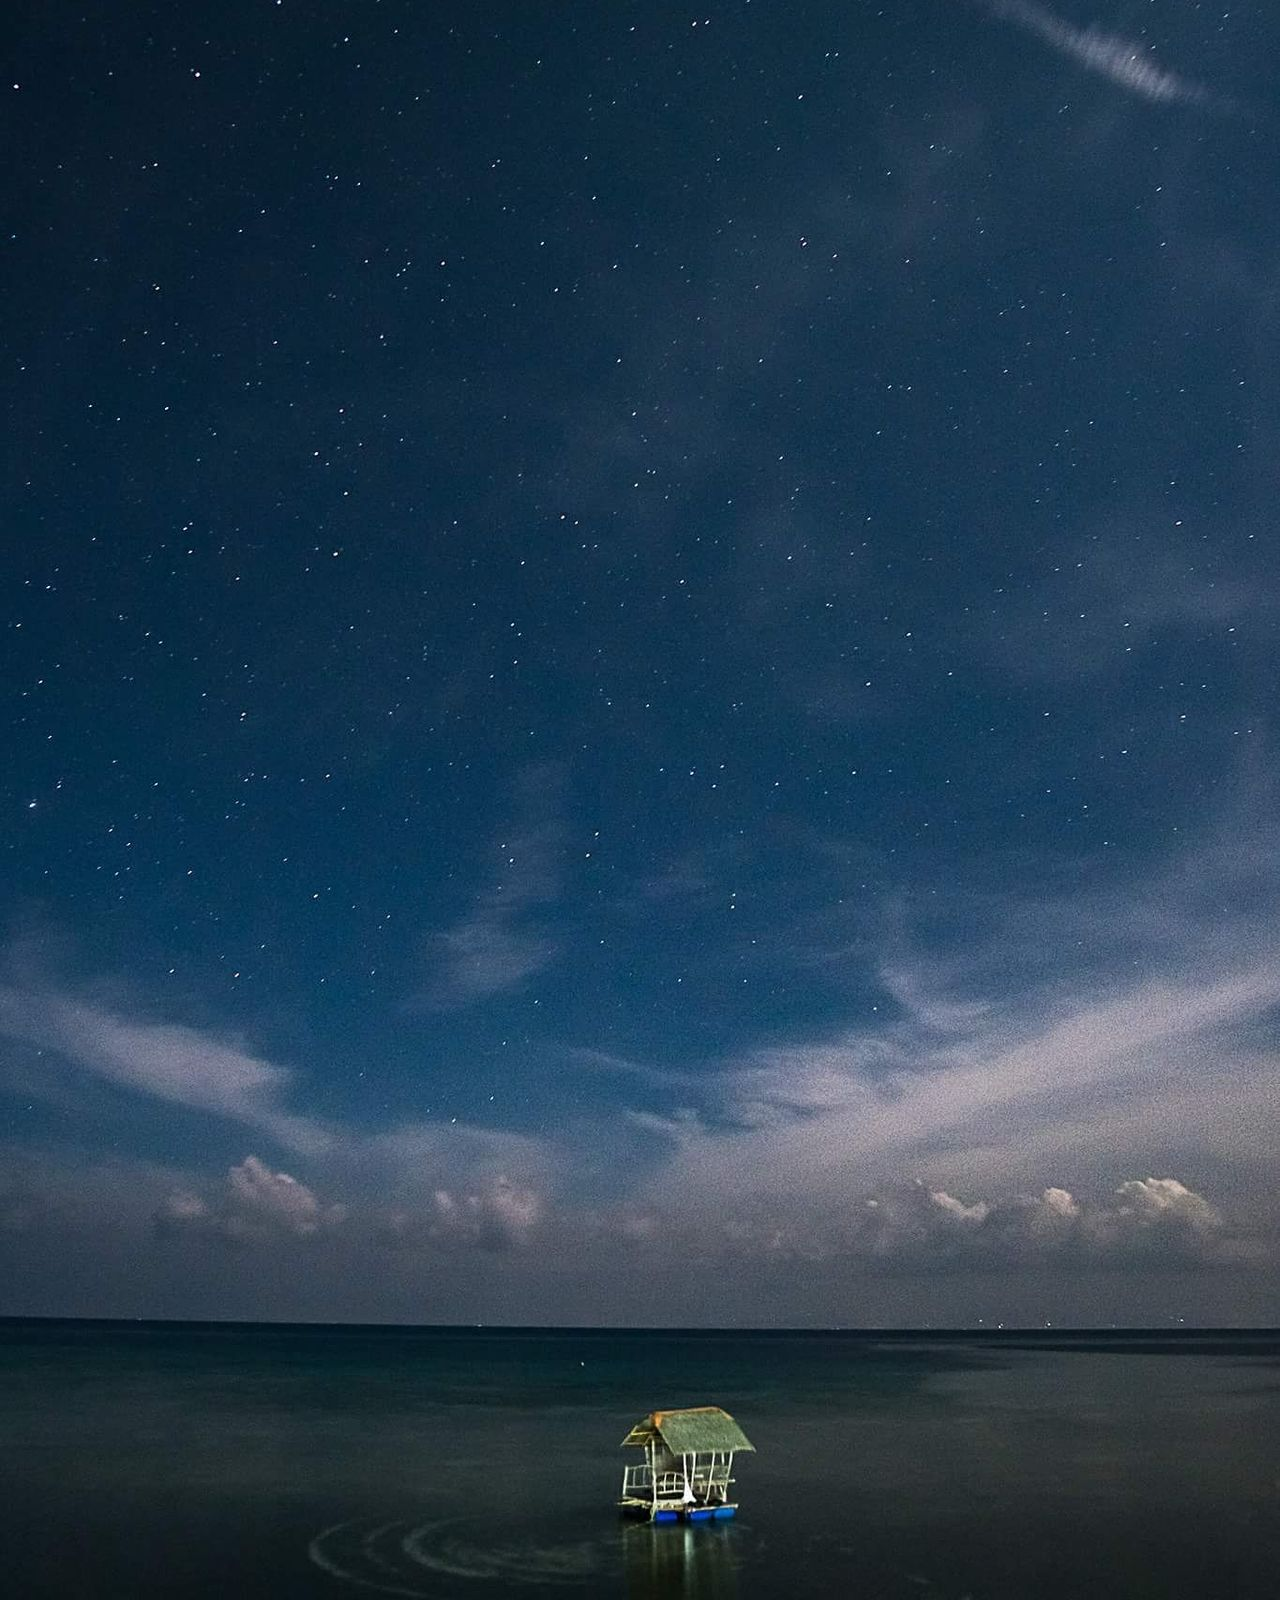 Sasha's resort, Oslob, simple place but amazing views!!! Sea Night Star - Space Beauty In Nature Astronomy Sky Scenics Space Star Field Water Galaxy Nature Outdoors Tranquility ASIA Tourism Philippines Expedition Photooftheday Vacations Wanderlust FUJIFILM X-T1 Travel Destinations Oslob Cebu Landscape